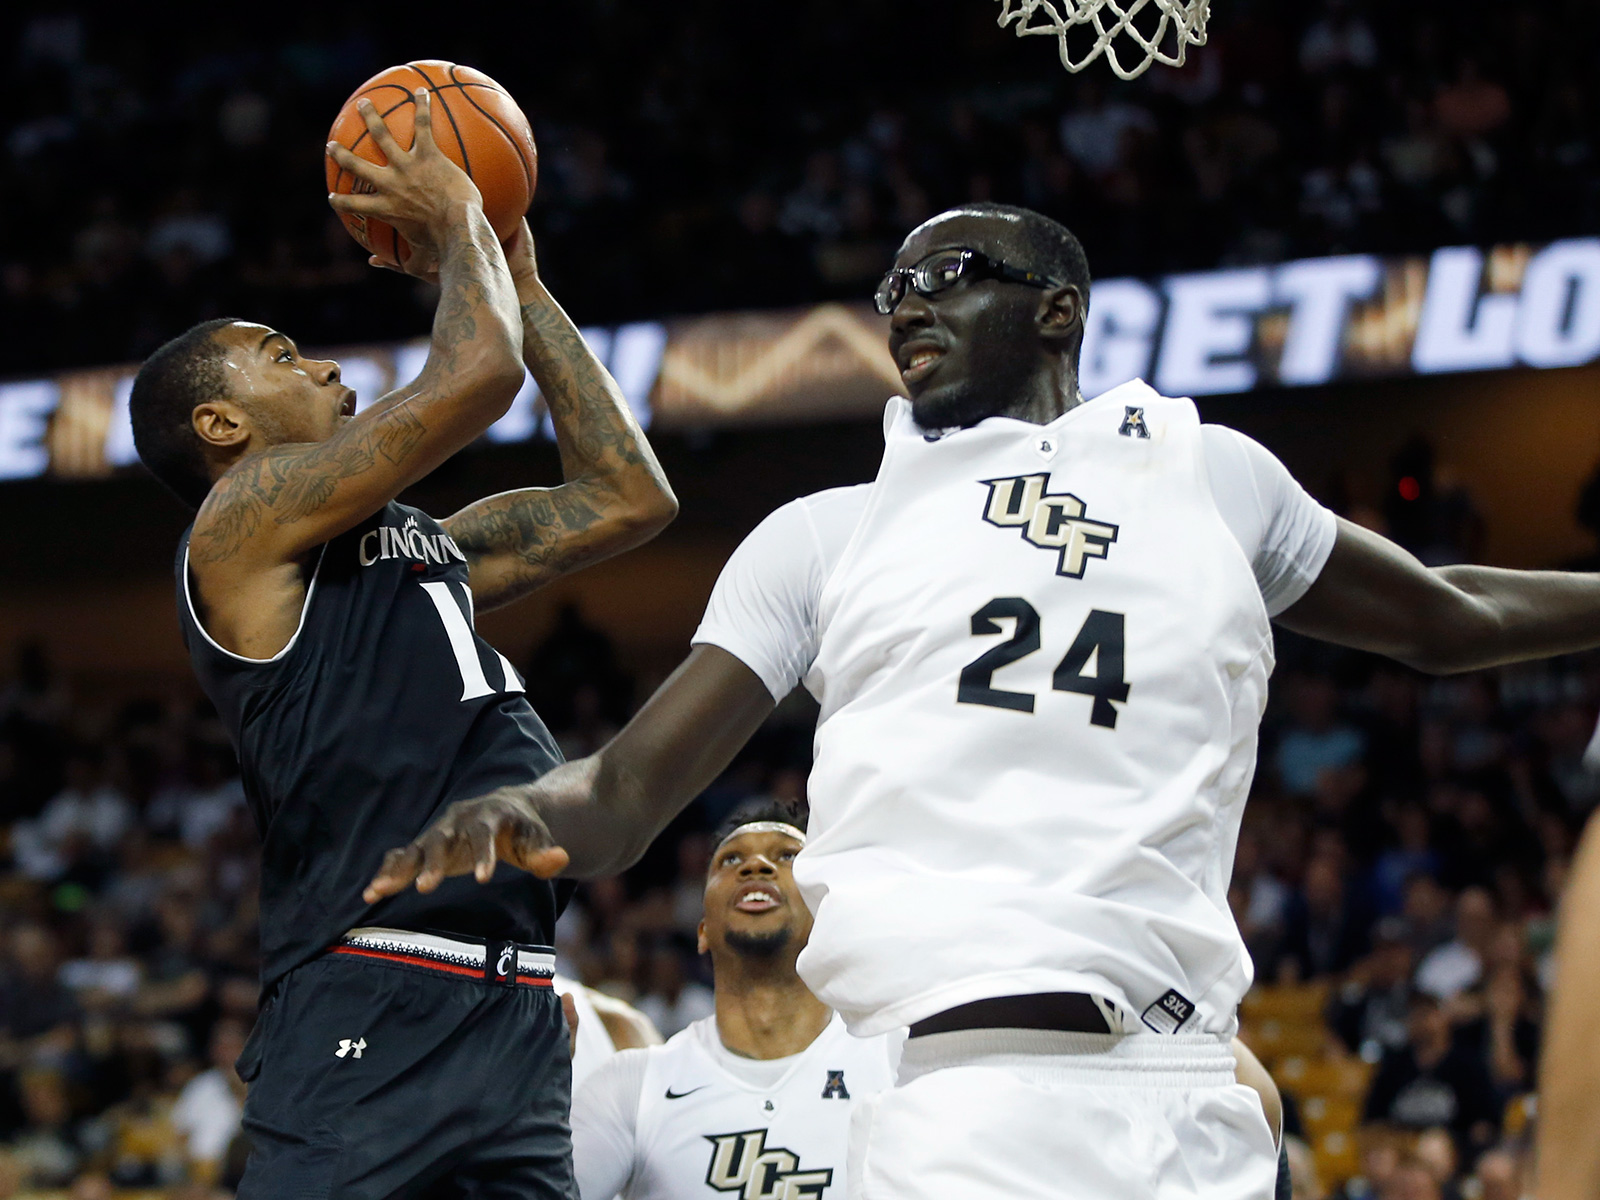 Cincinnati's Gary Clark and UCF's Tacko Fall could help their respective teams surprise people this winter.